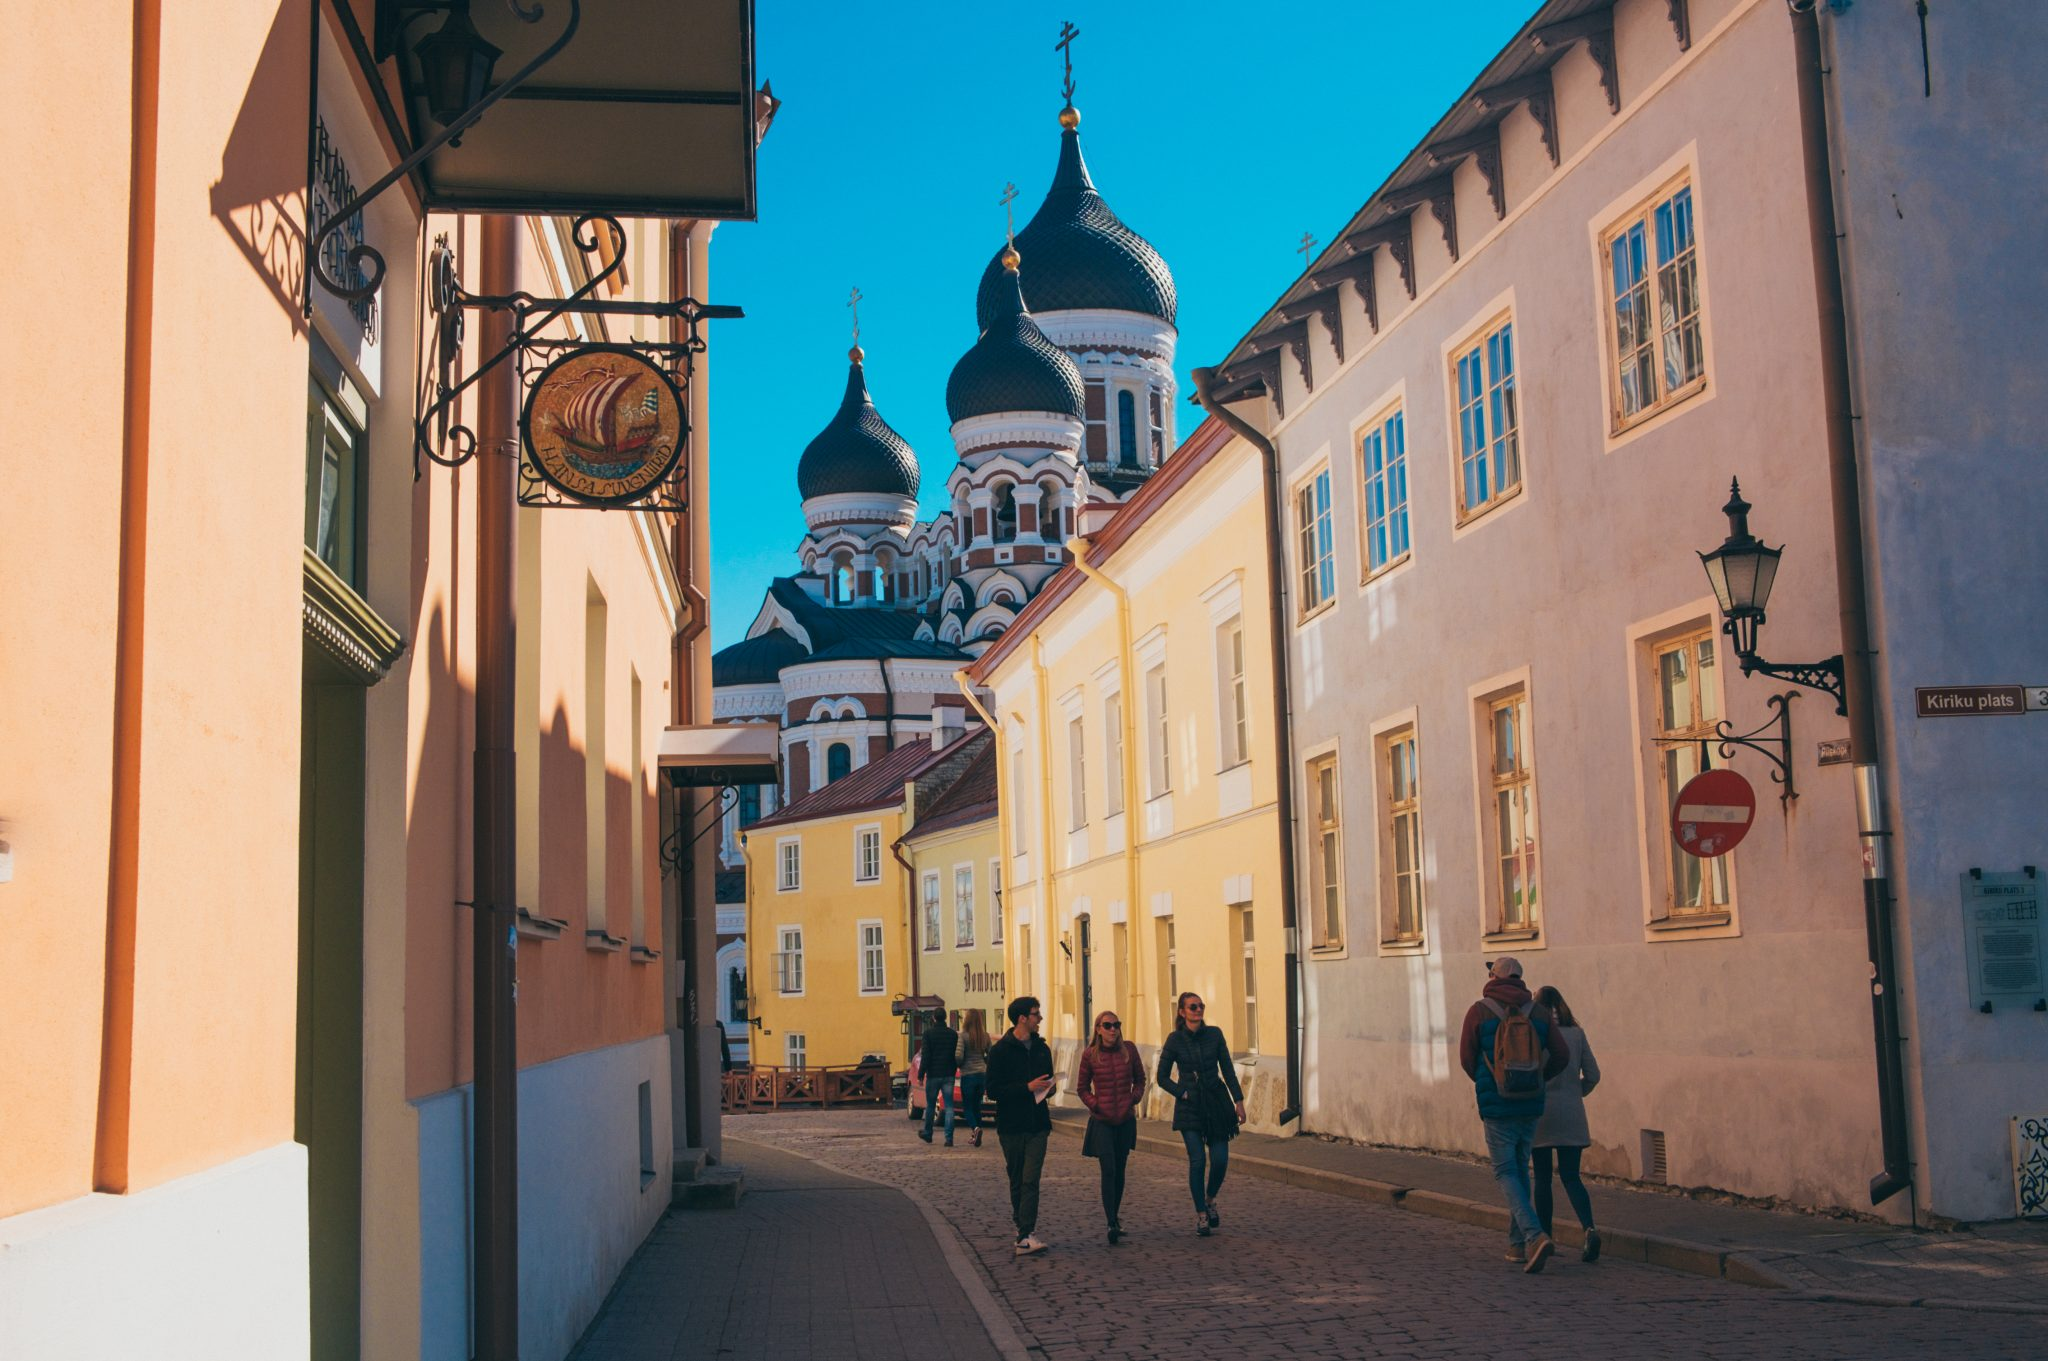 People walking in a street in Tallinn with the Alexander Nevsky Cathedral in the background photo by Jo Kassis